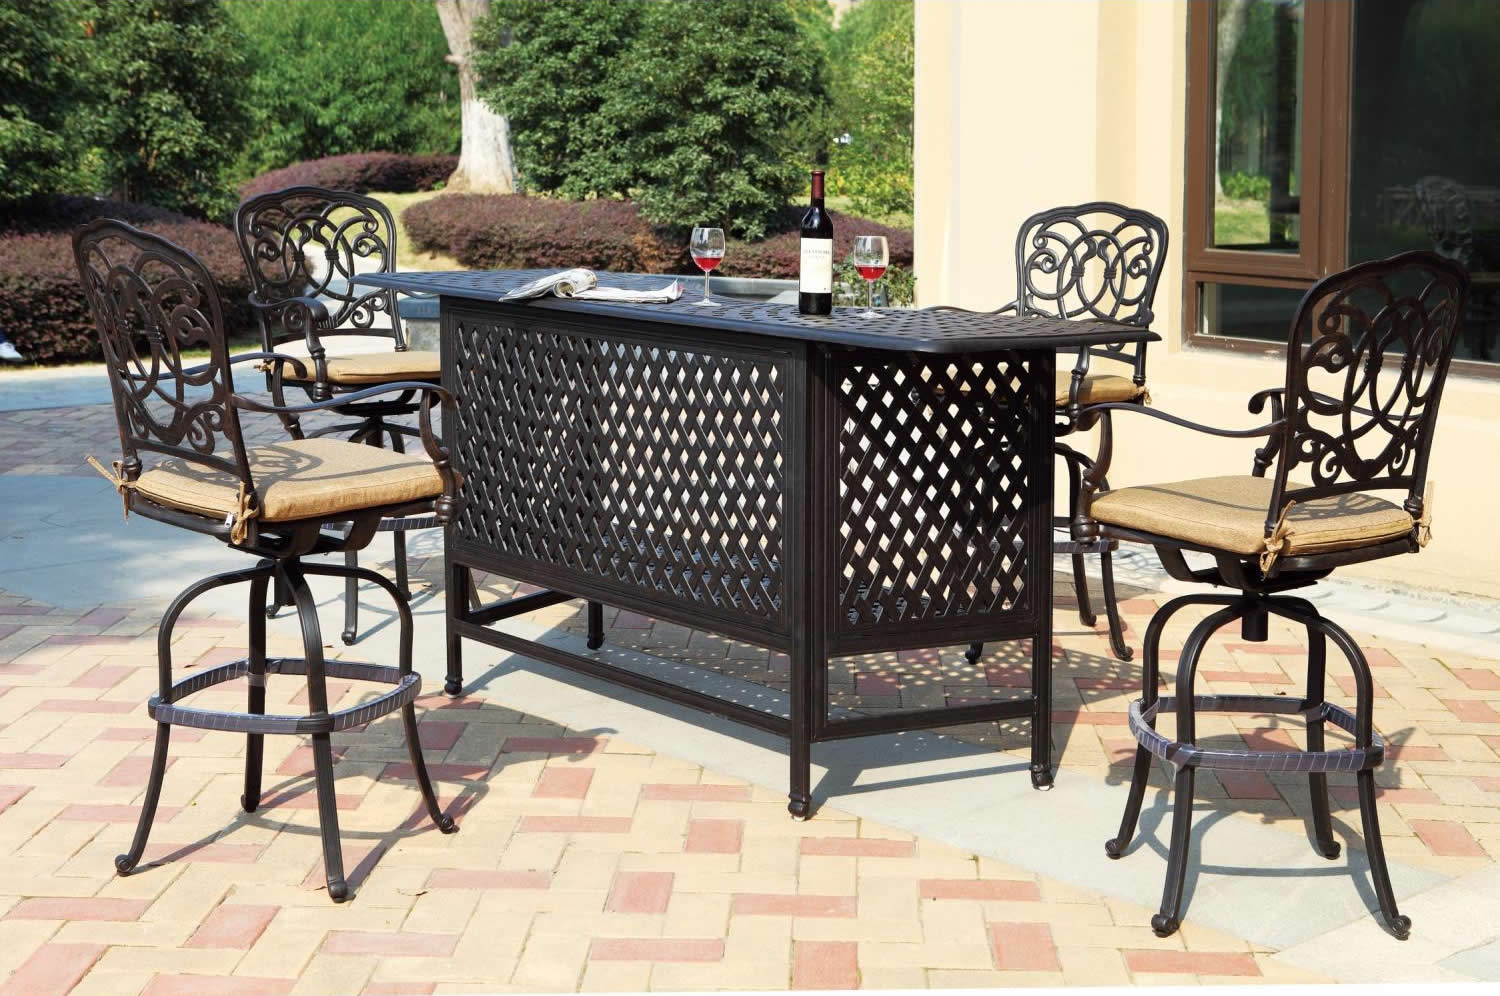 Patio furniture party bar set cast aluminum 82 5pc florence for Aluminum patio furniture